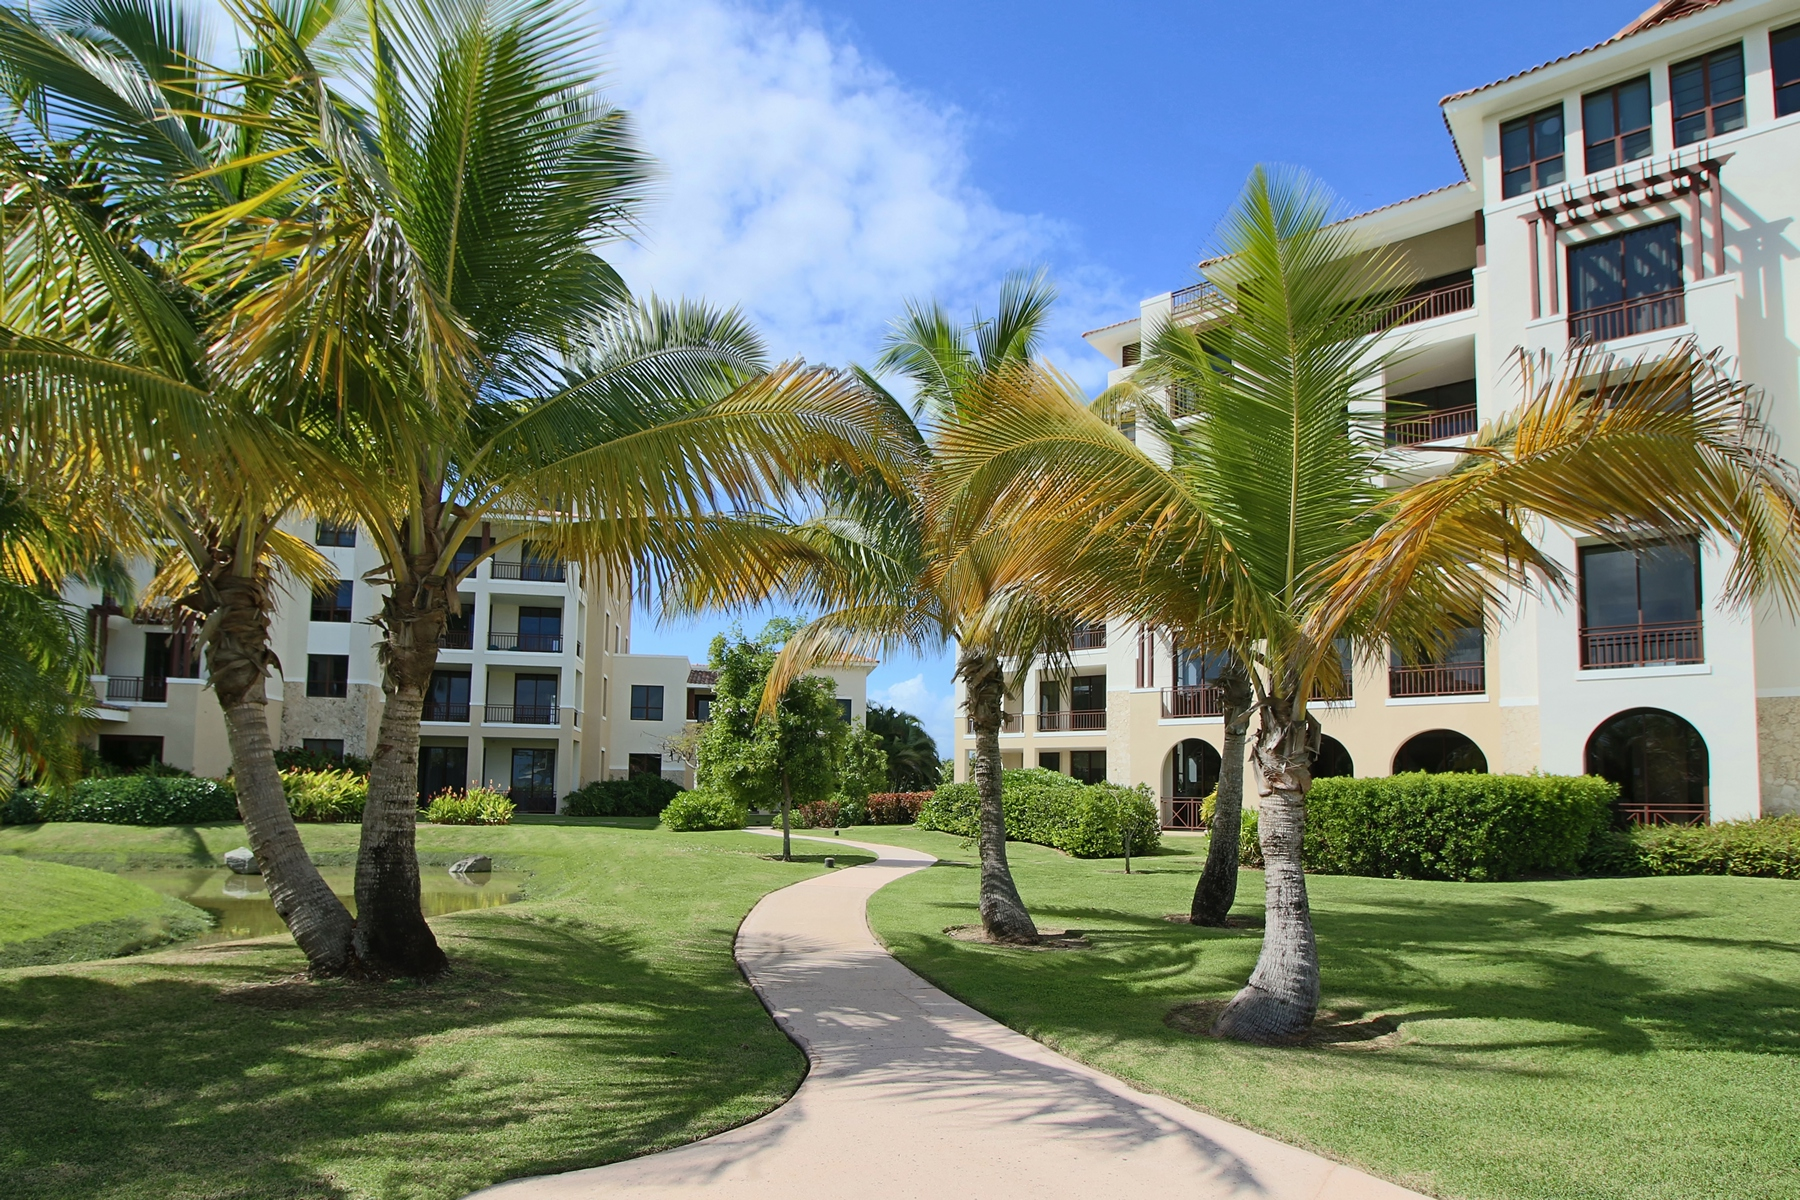 Additional photo for property listing at Solarea Beach Resort and Yacht Club 238 Candelero Drive Solarea Beach Resort and Yacht Club Palmas Del Mar, Puerto Rico 00791 Puerto Rico